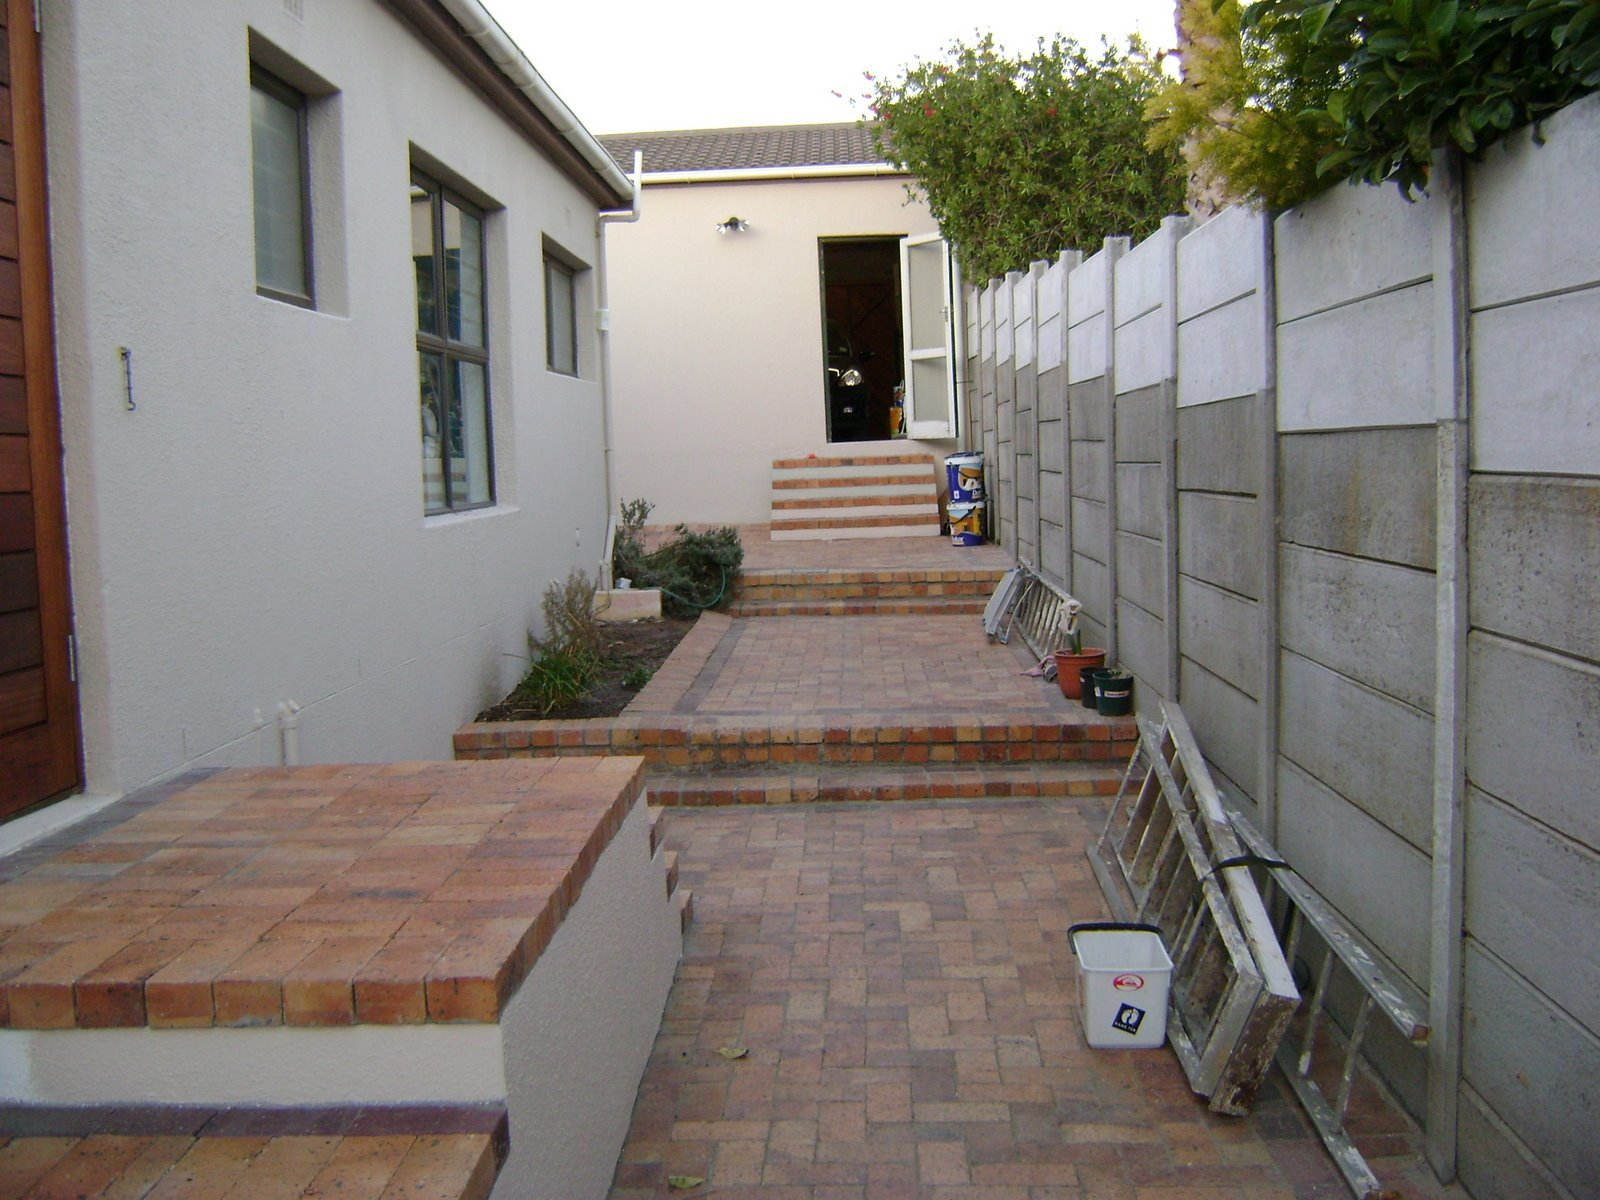 New steps and paving